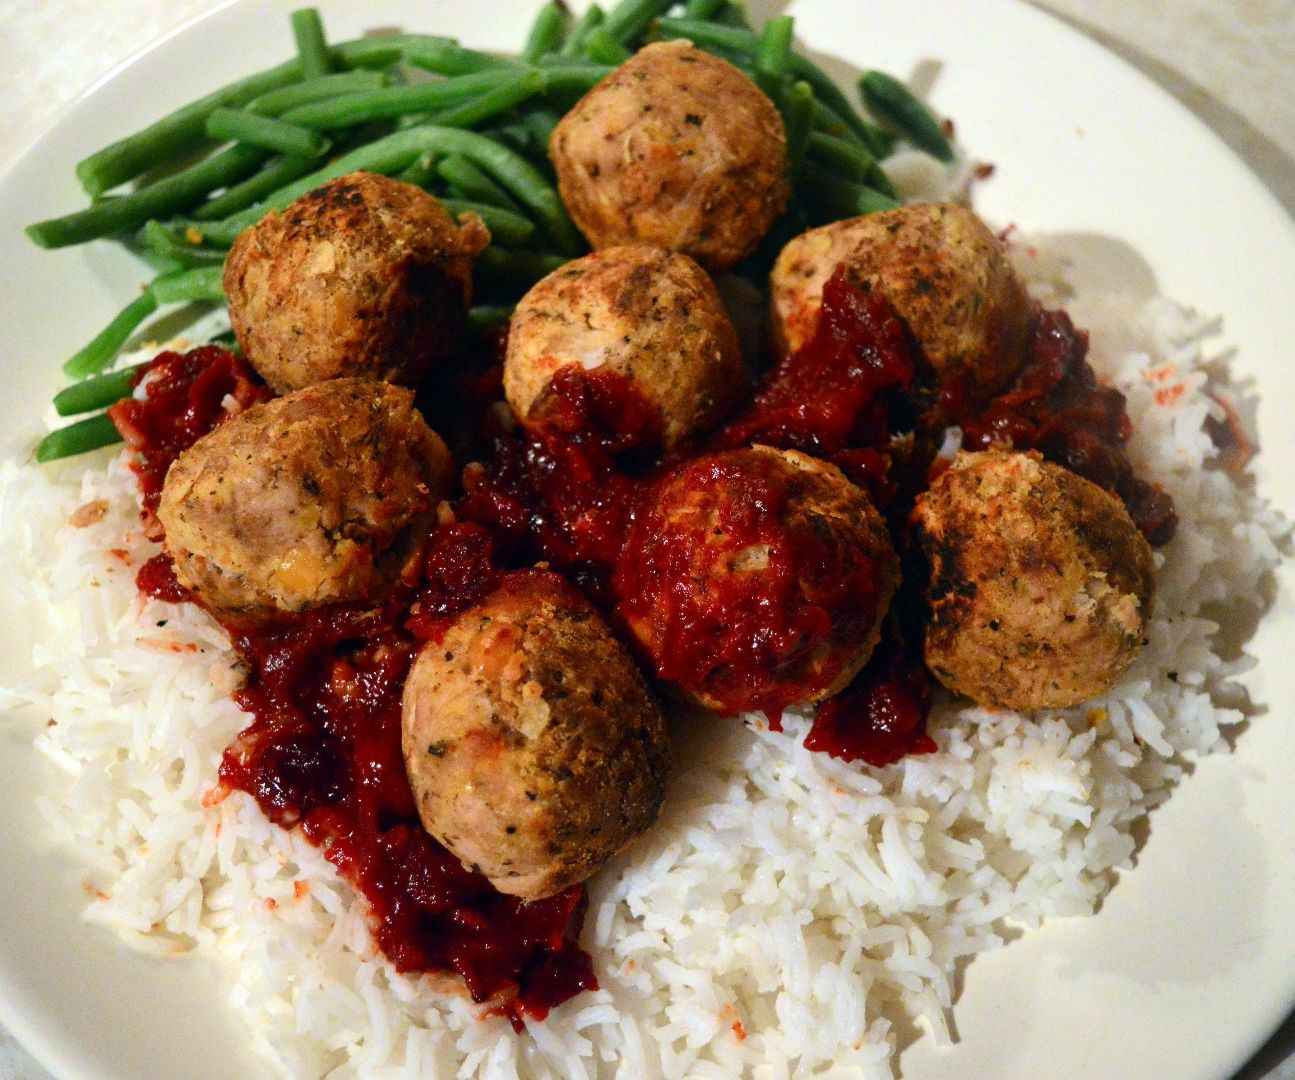 Tuna and Chickpea Meatballs With Cranberry and Jack Daniels Barbecue Sauce